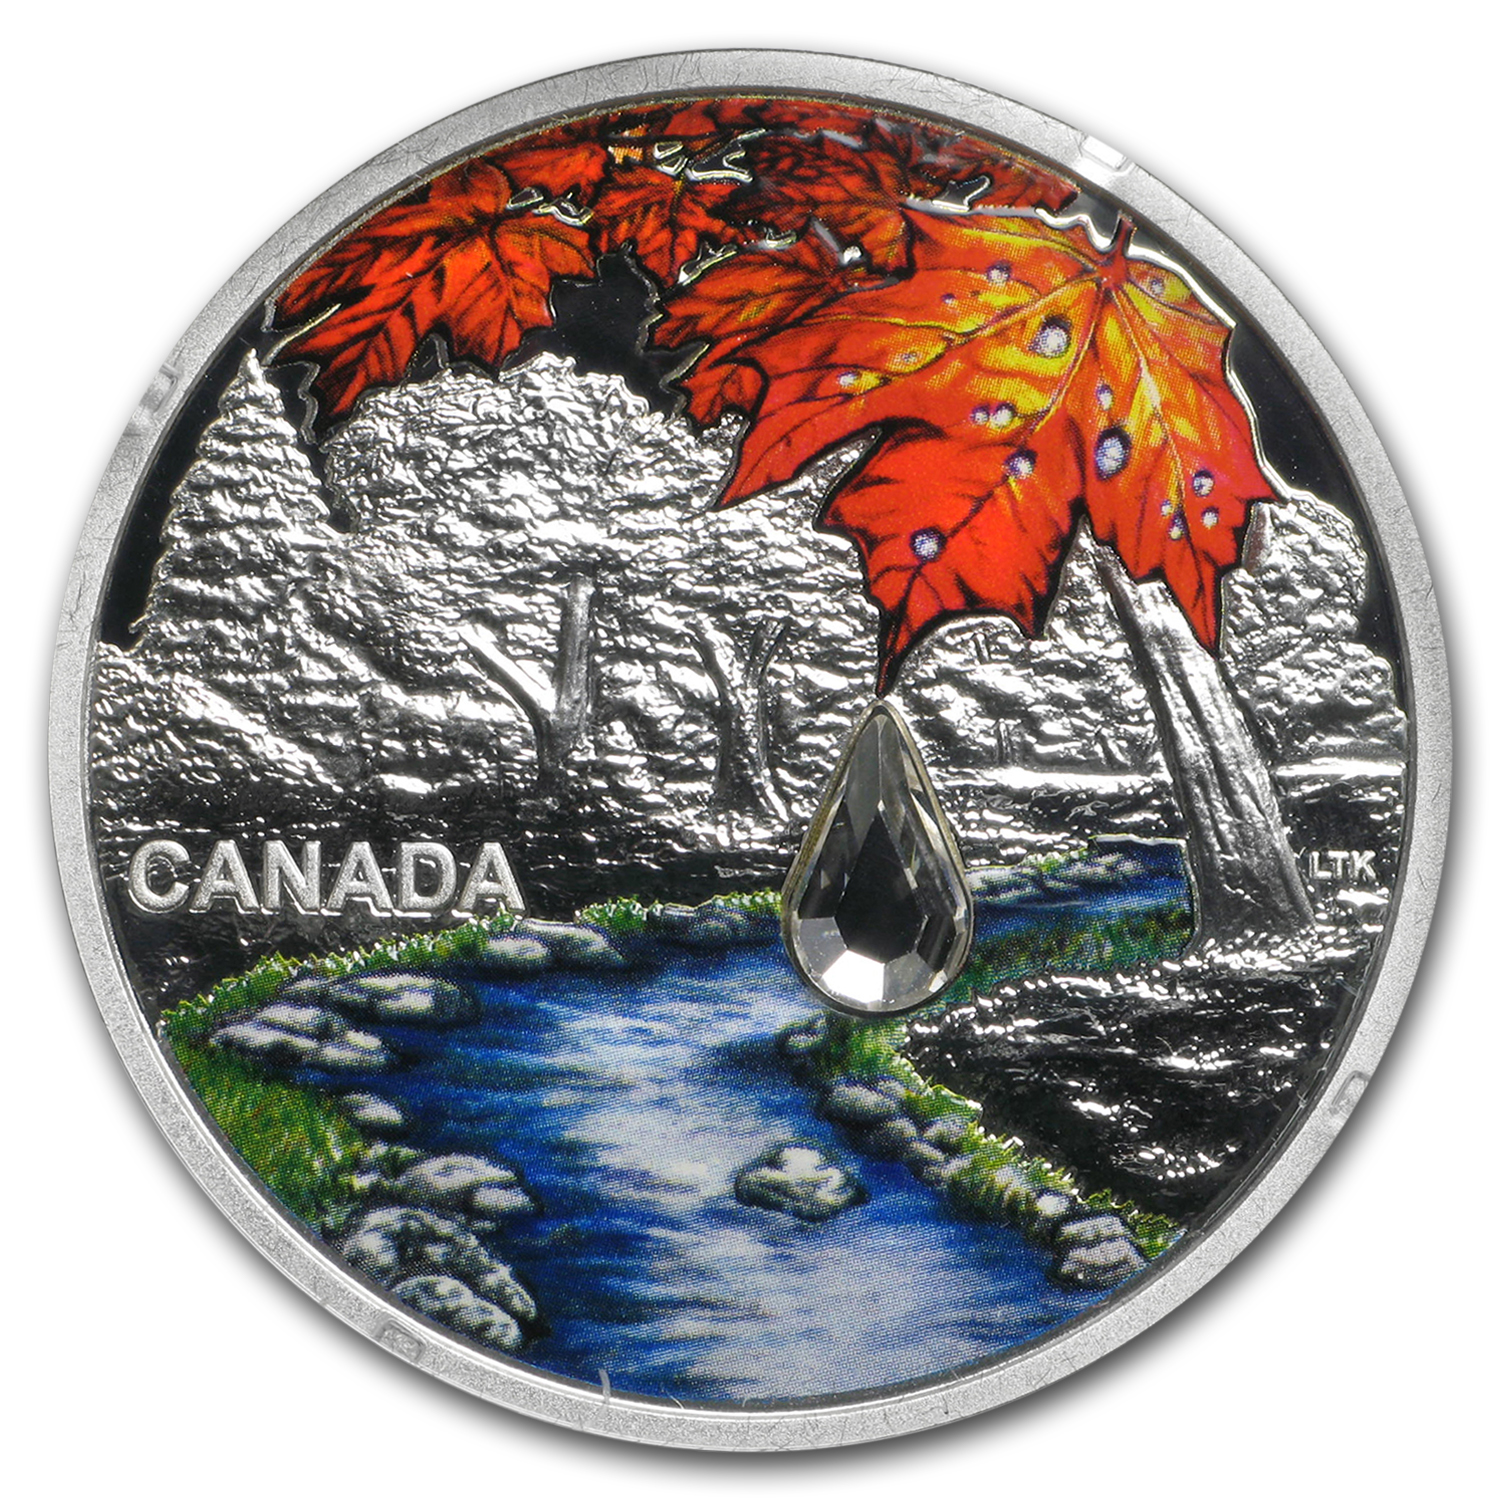 2017 Canada 1 oz Silver $20 Jewel of the Rain: Sugar Maple Leaves